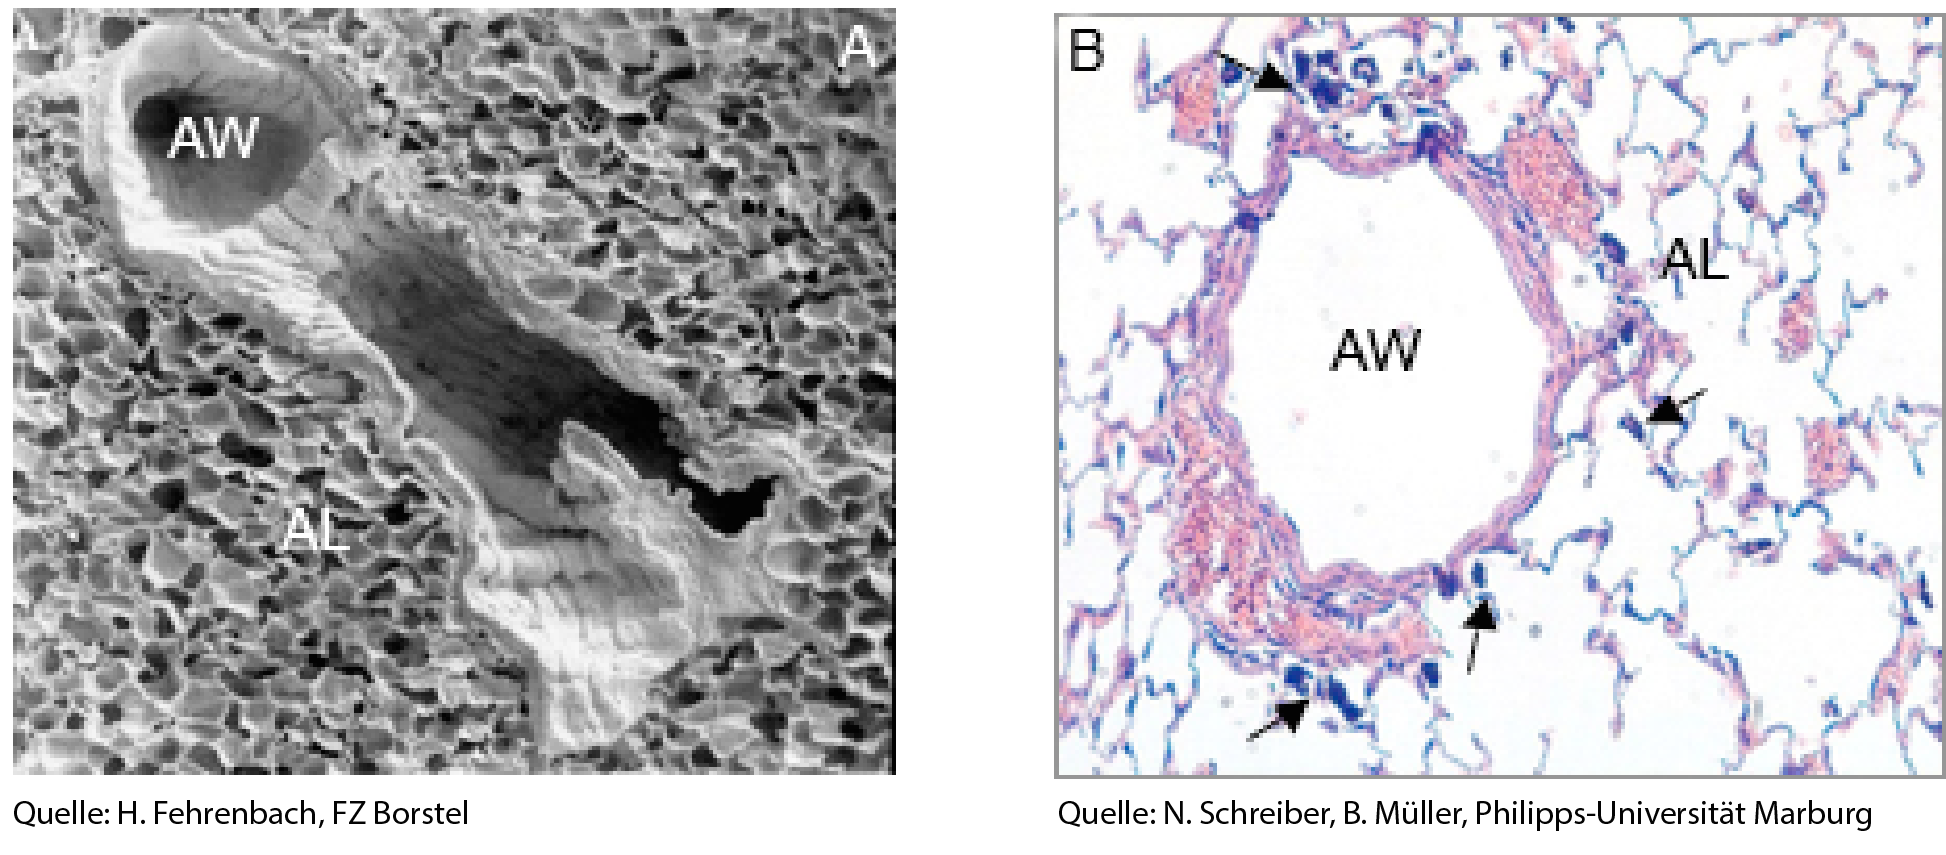 Images of the lung taken with (A) a Scanning Electron Microscope or (B) light microscope showing the airways (AW) and surrounding alveoli (AL). Arrows indicate inhaled agglomerates of carbon black nanoparticles (CBNP).